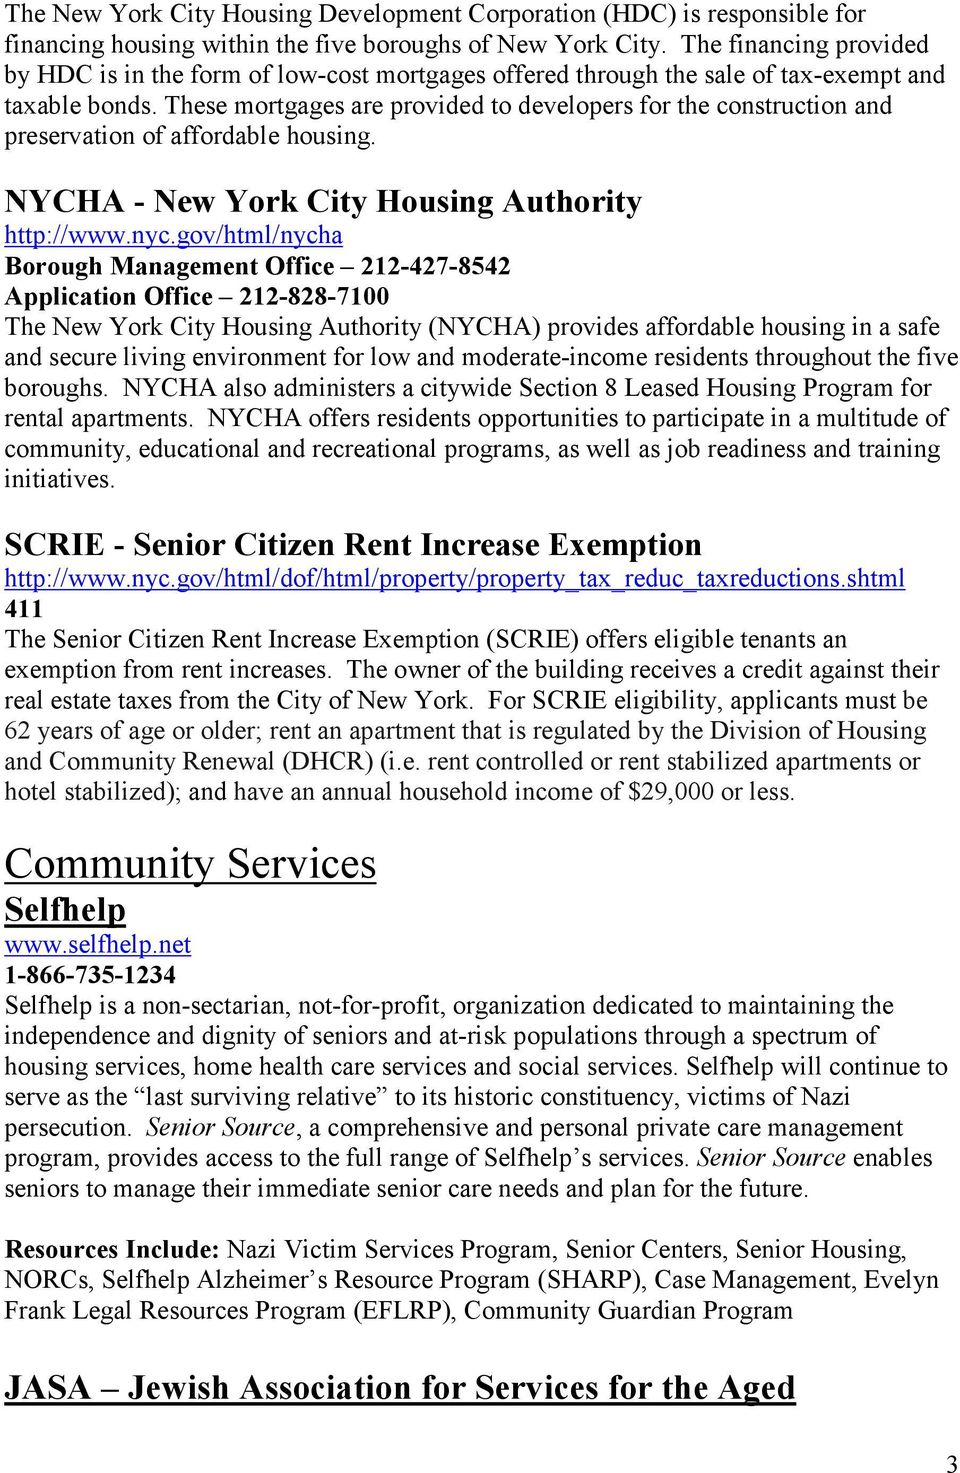 These mortgages are provided to developers for the construction and preservation of affordable housing. NYCHA - New York City Housing Authority http://www.nyc.